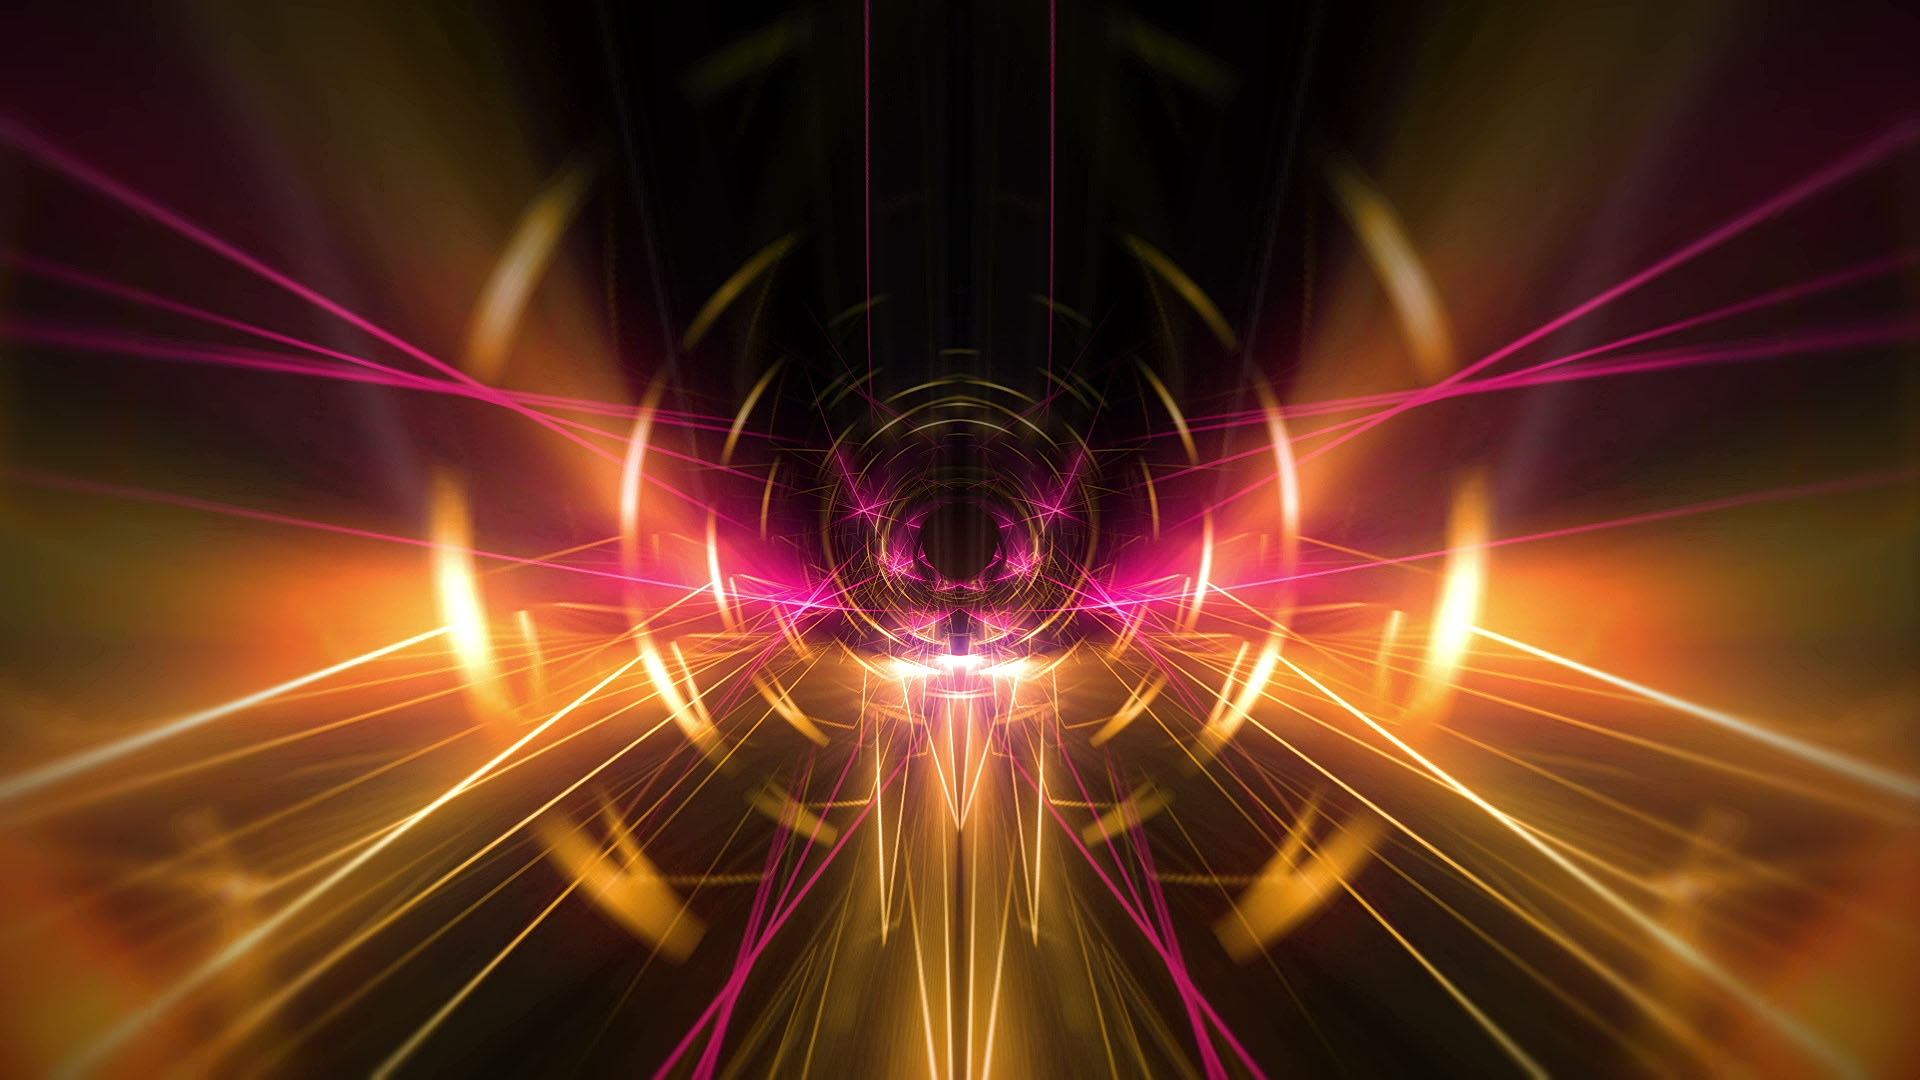 motion_tunnel_vj_loops_Layer_16